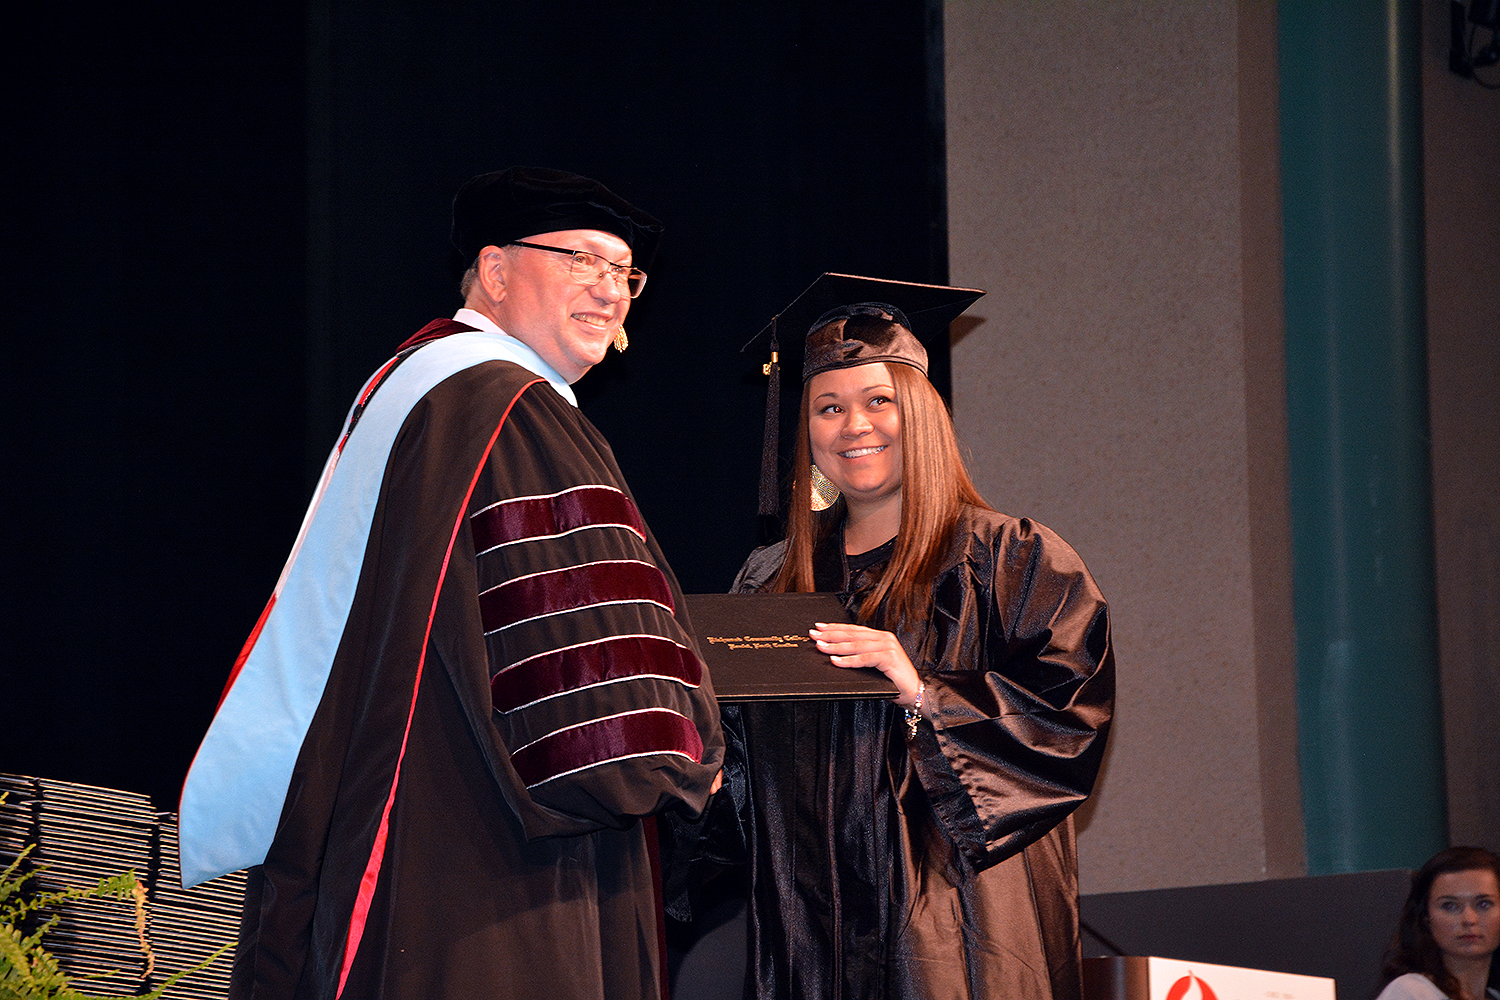 Graduate accepts a diploma and smiles for the camera with Dr. McInnis